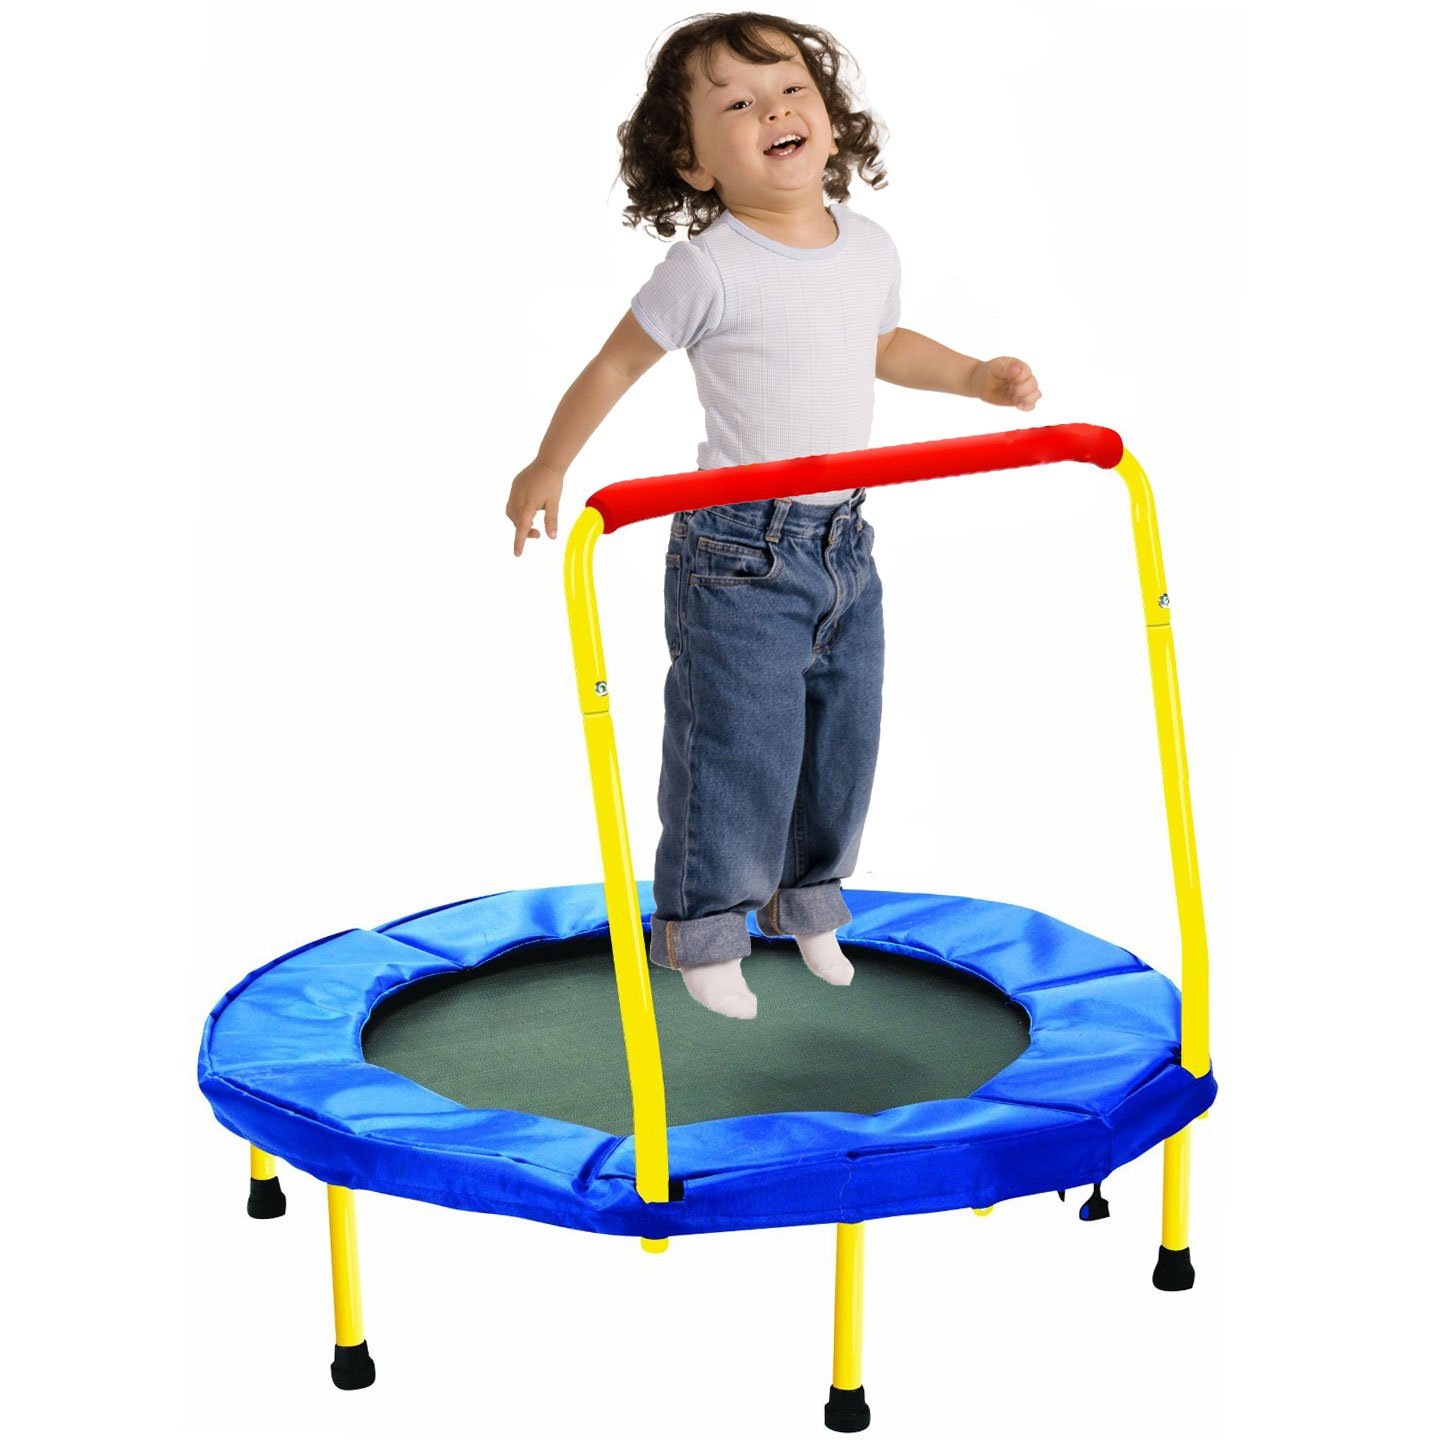 MakBB 36'' Kids Trampoline w/ Handle, Foldable Indoor Safety Padded Trampoline For Kids